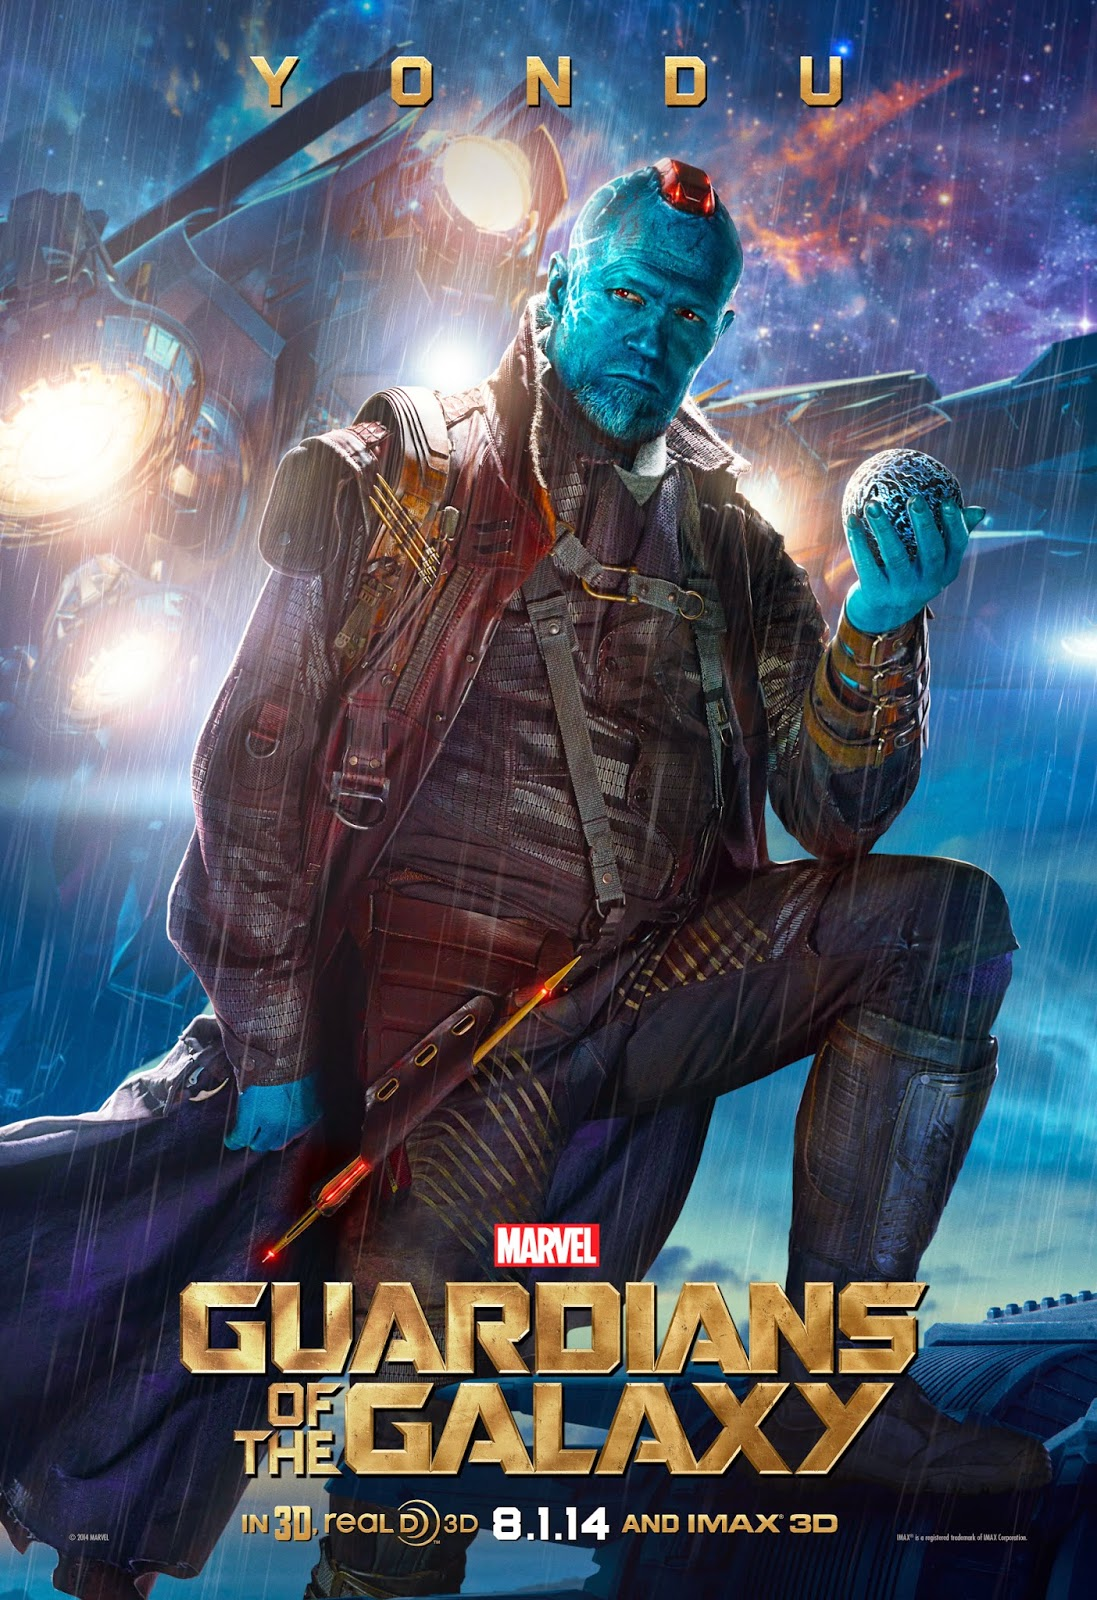 Sasaki Time: Marvel's Guardians of The Galaxy Character Poster: Yondu!